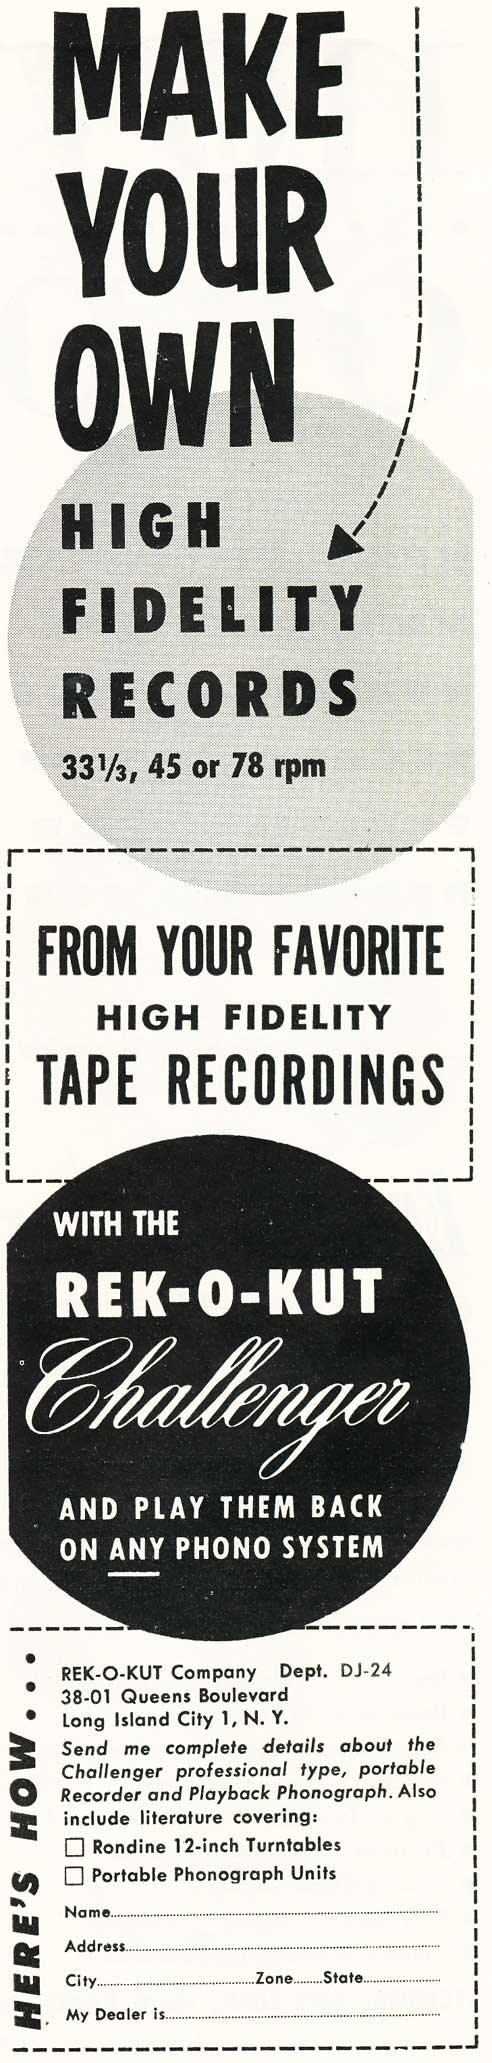 1955 ad for Rek-O-Kut in Reel2ReelTexas.com's vintage recording collection